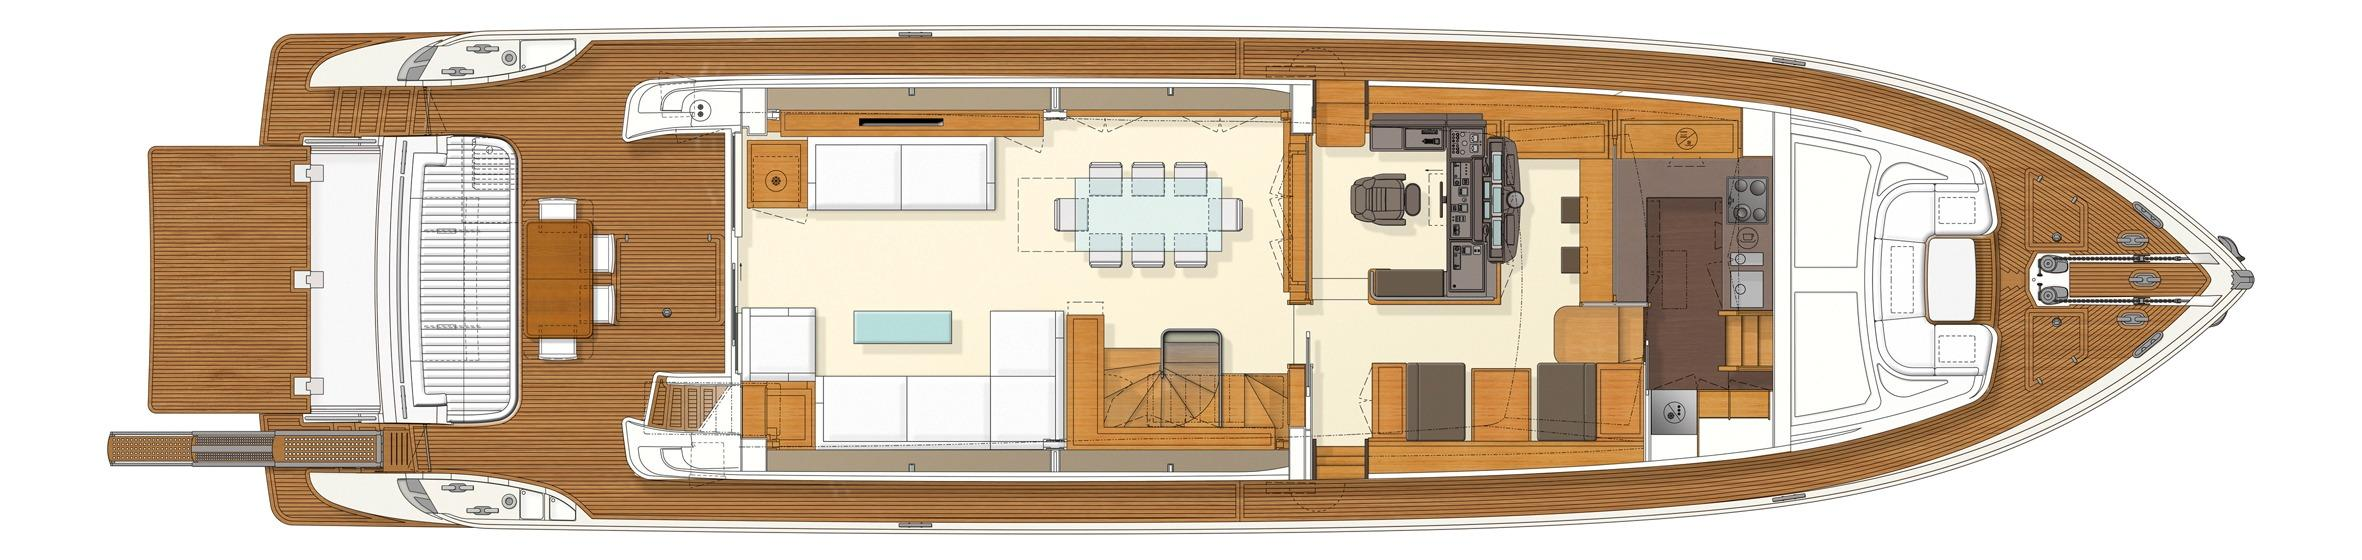 Manufacturer Provided Image: Ferretti 830 Upper Deck Layout Plan